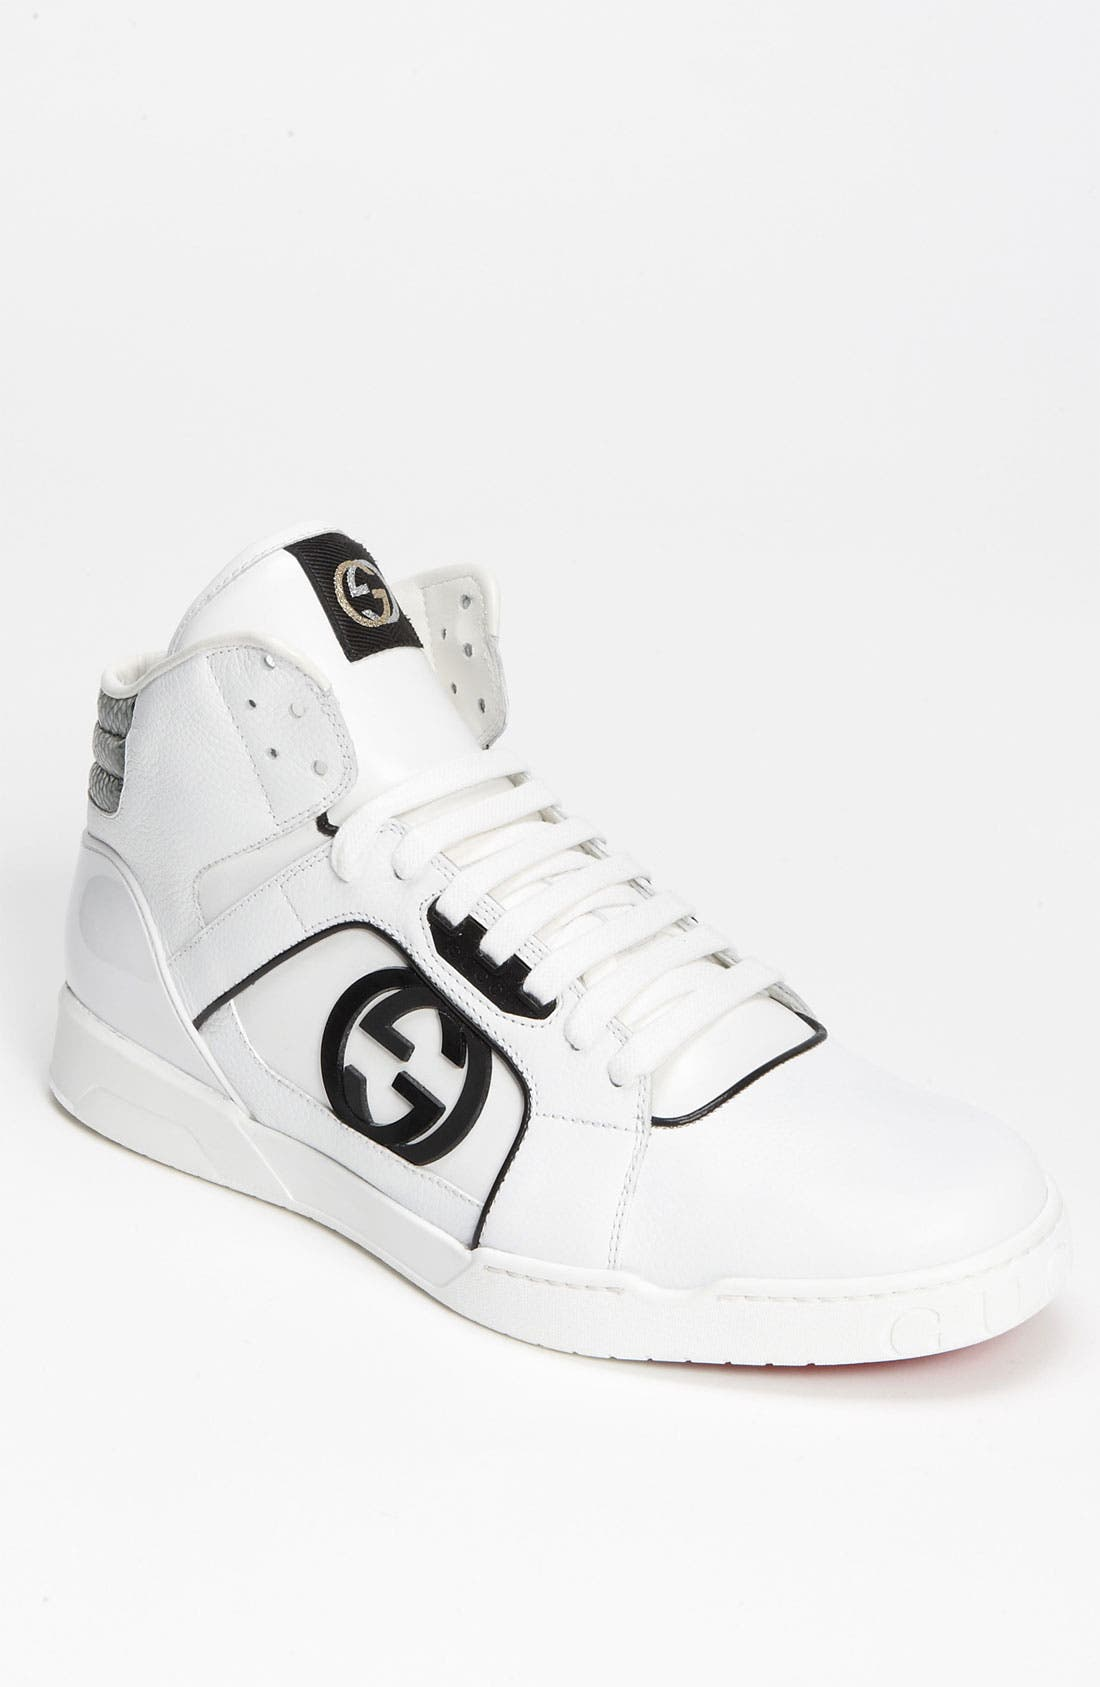 Alternate Image 1 Selected - Gucci 'Rebound' Mid High Top Sneaker